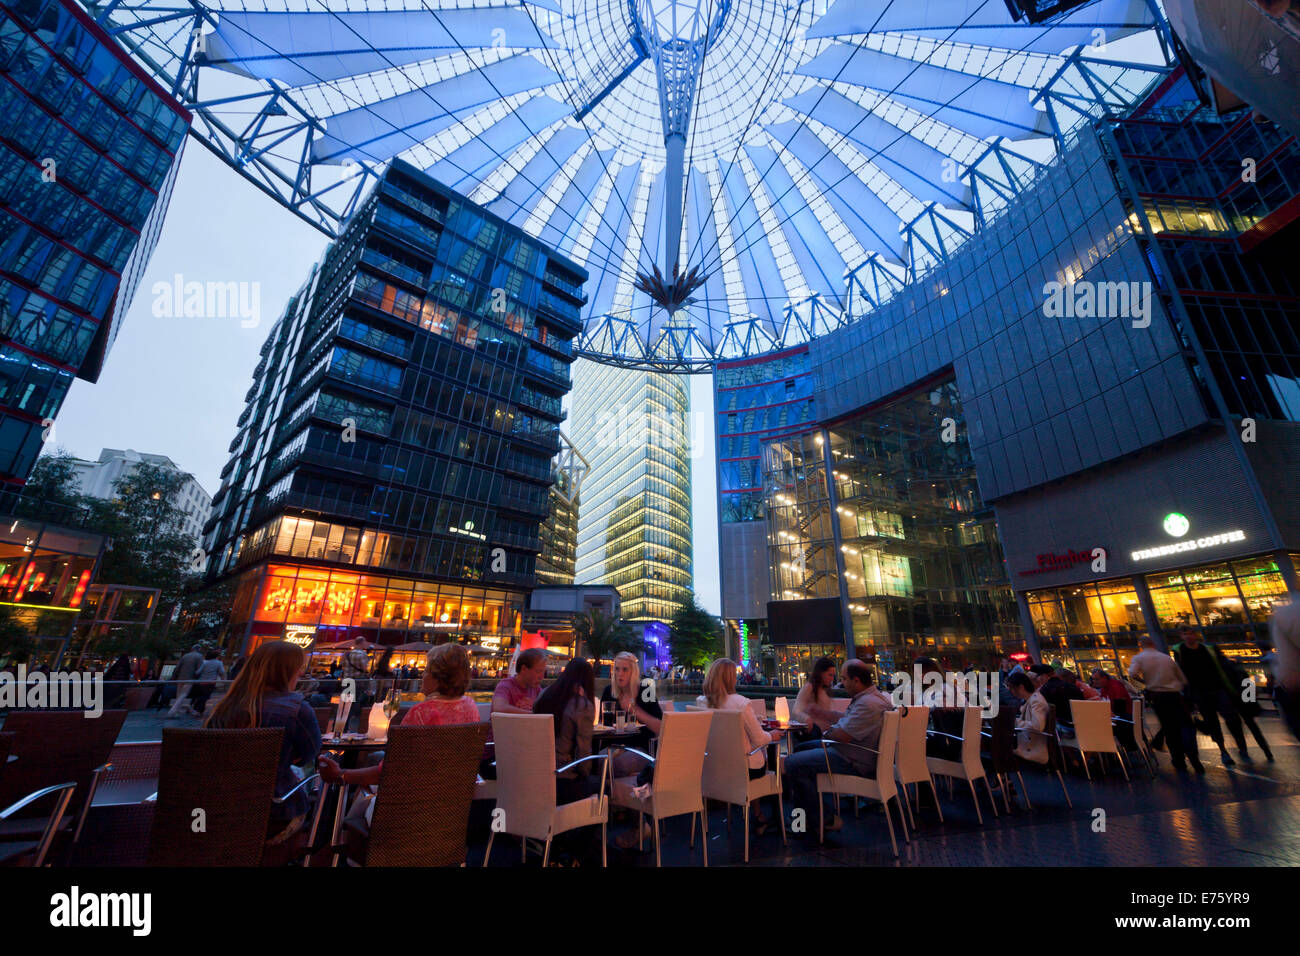 the illuminated dome and restaurants in the forum of the sony center stock photo royalty free. Black Bedroom Furniture Sets. Home Design Ideas